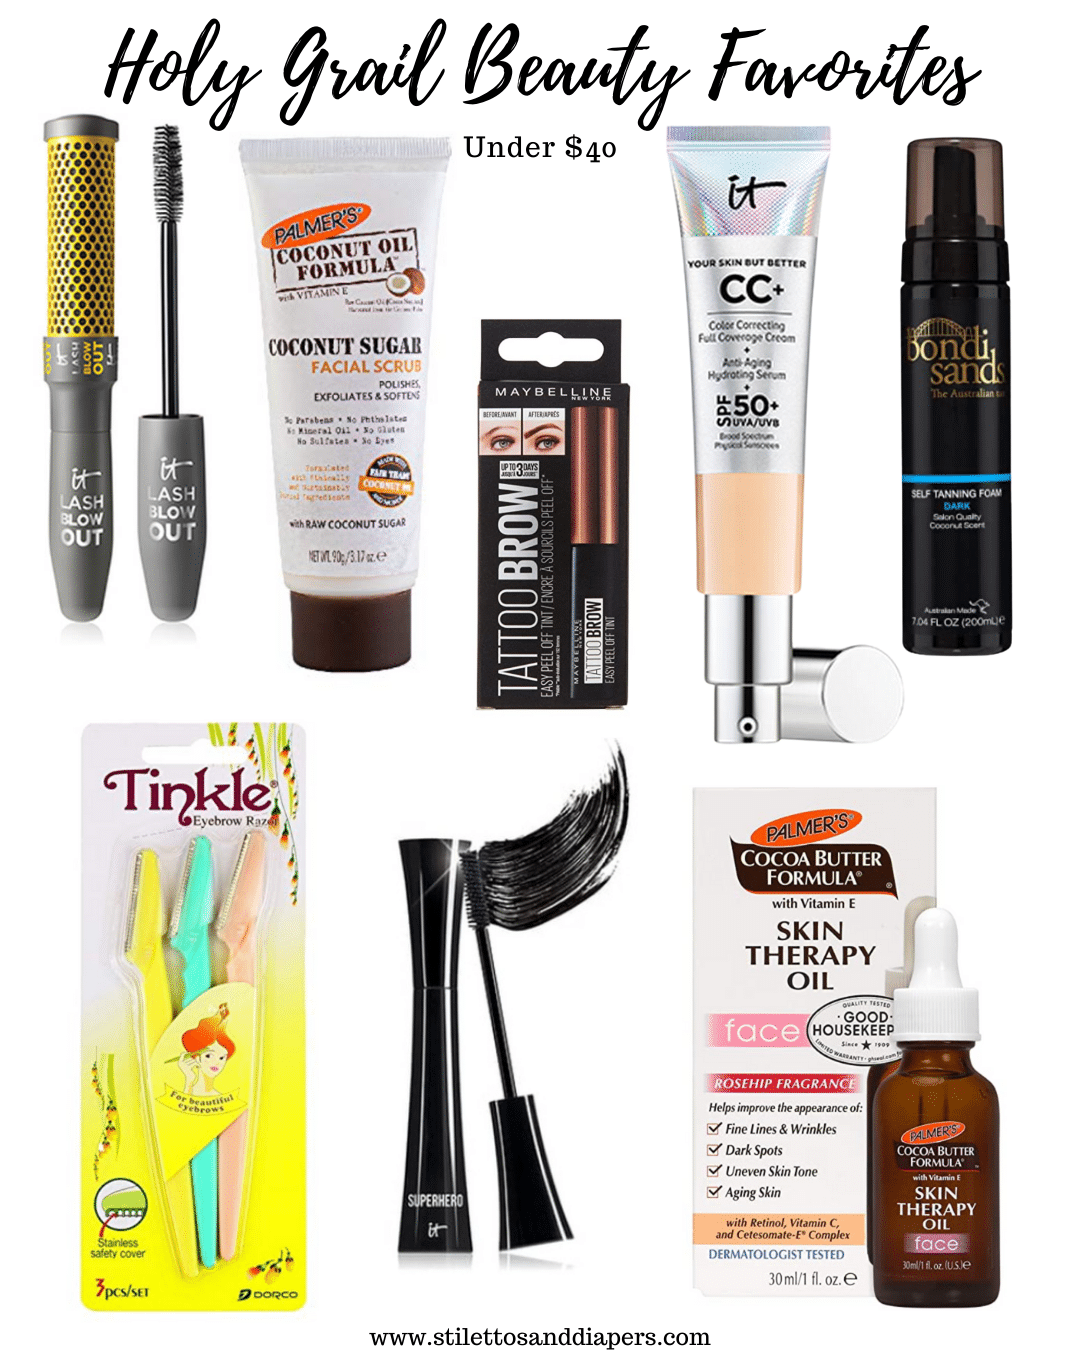 7 Holy Grail Skin and Beauty Favorites